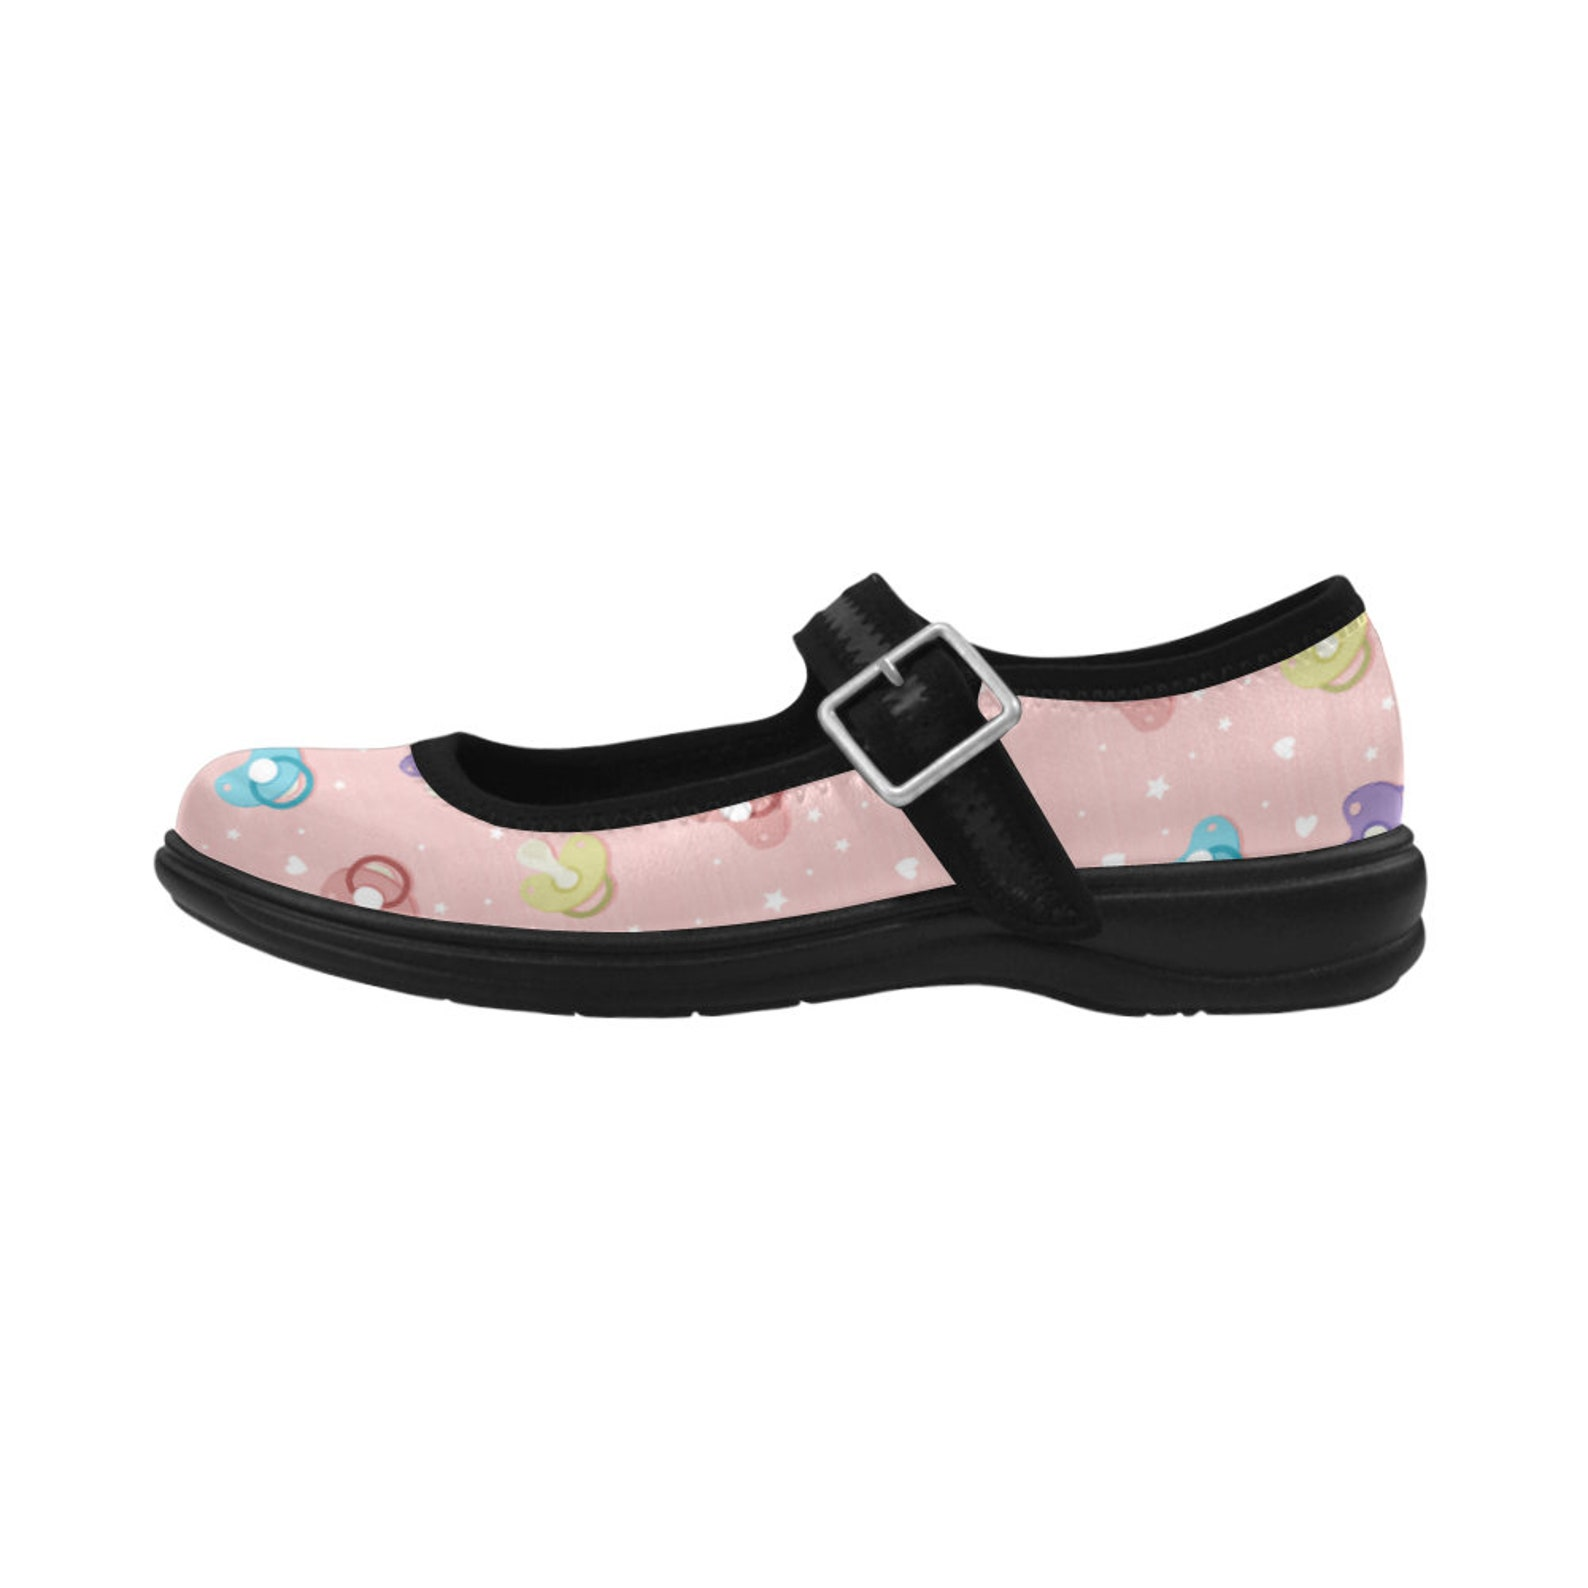 ddlg shoes - pastel shoes - kawaii shoes - abdl - ddlg pink ballet shoes - ddlg pacifier - yami kawaii